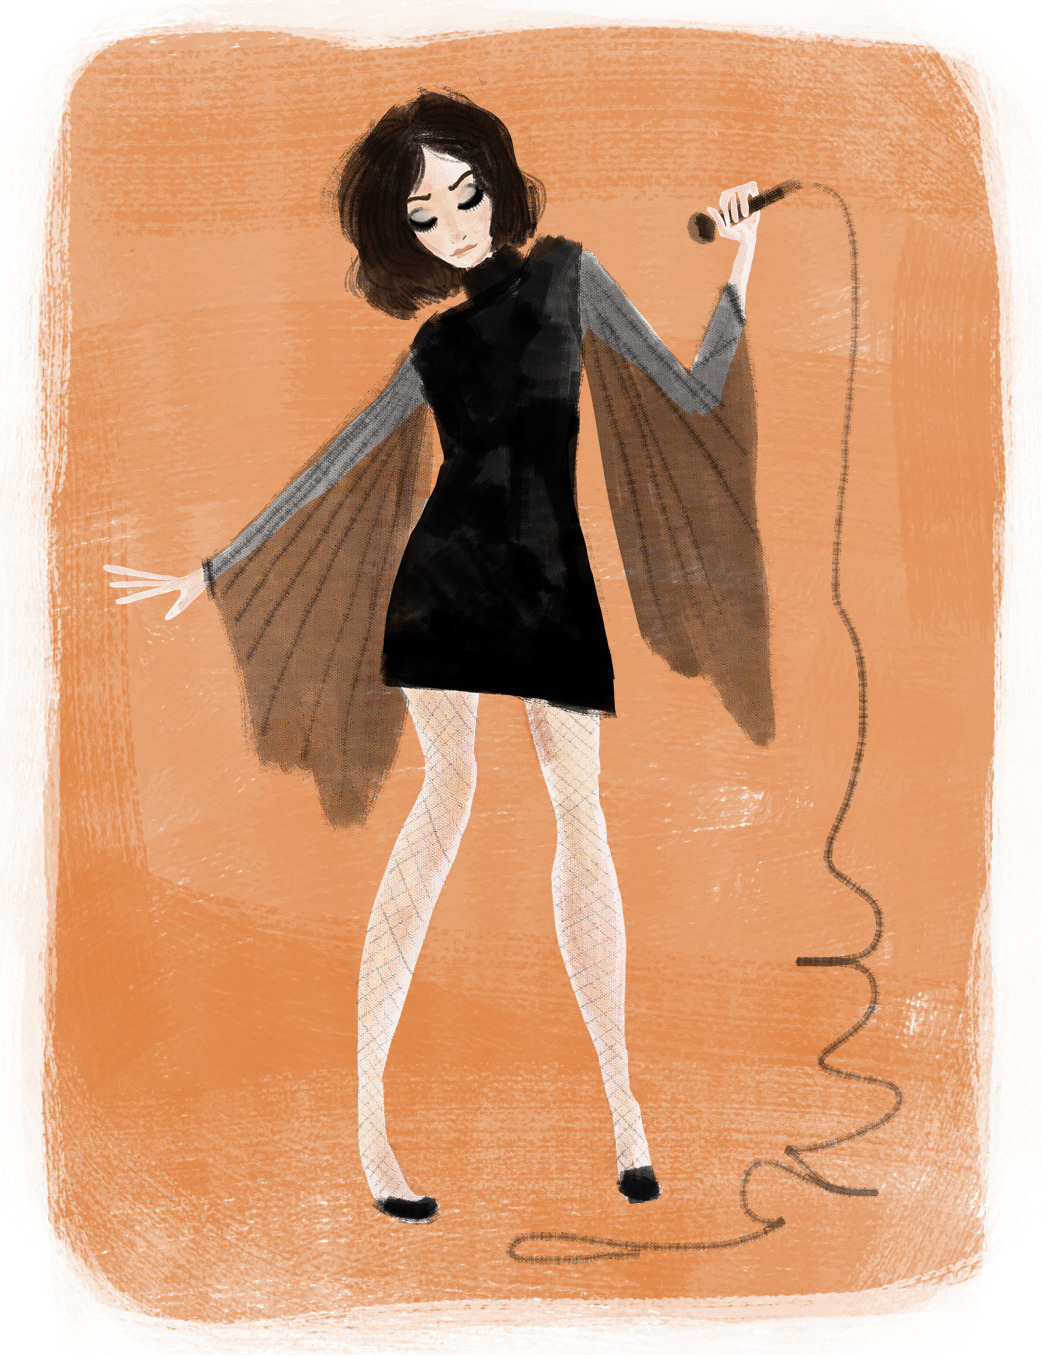 Mad Men's Megan Draper illustrated by Emily M Hughes